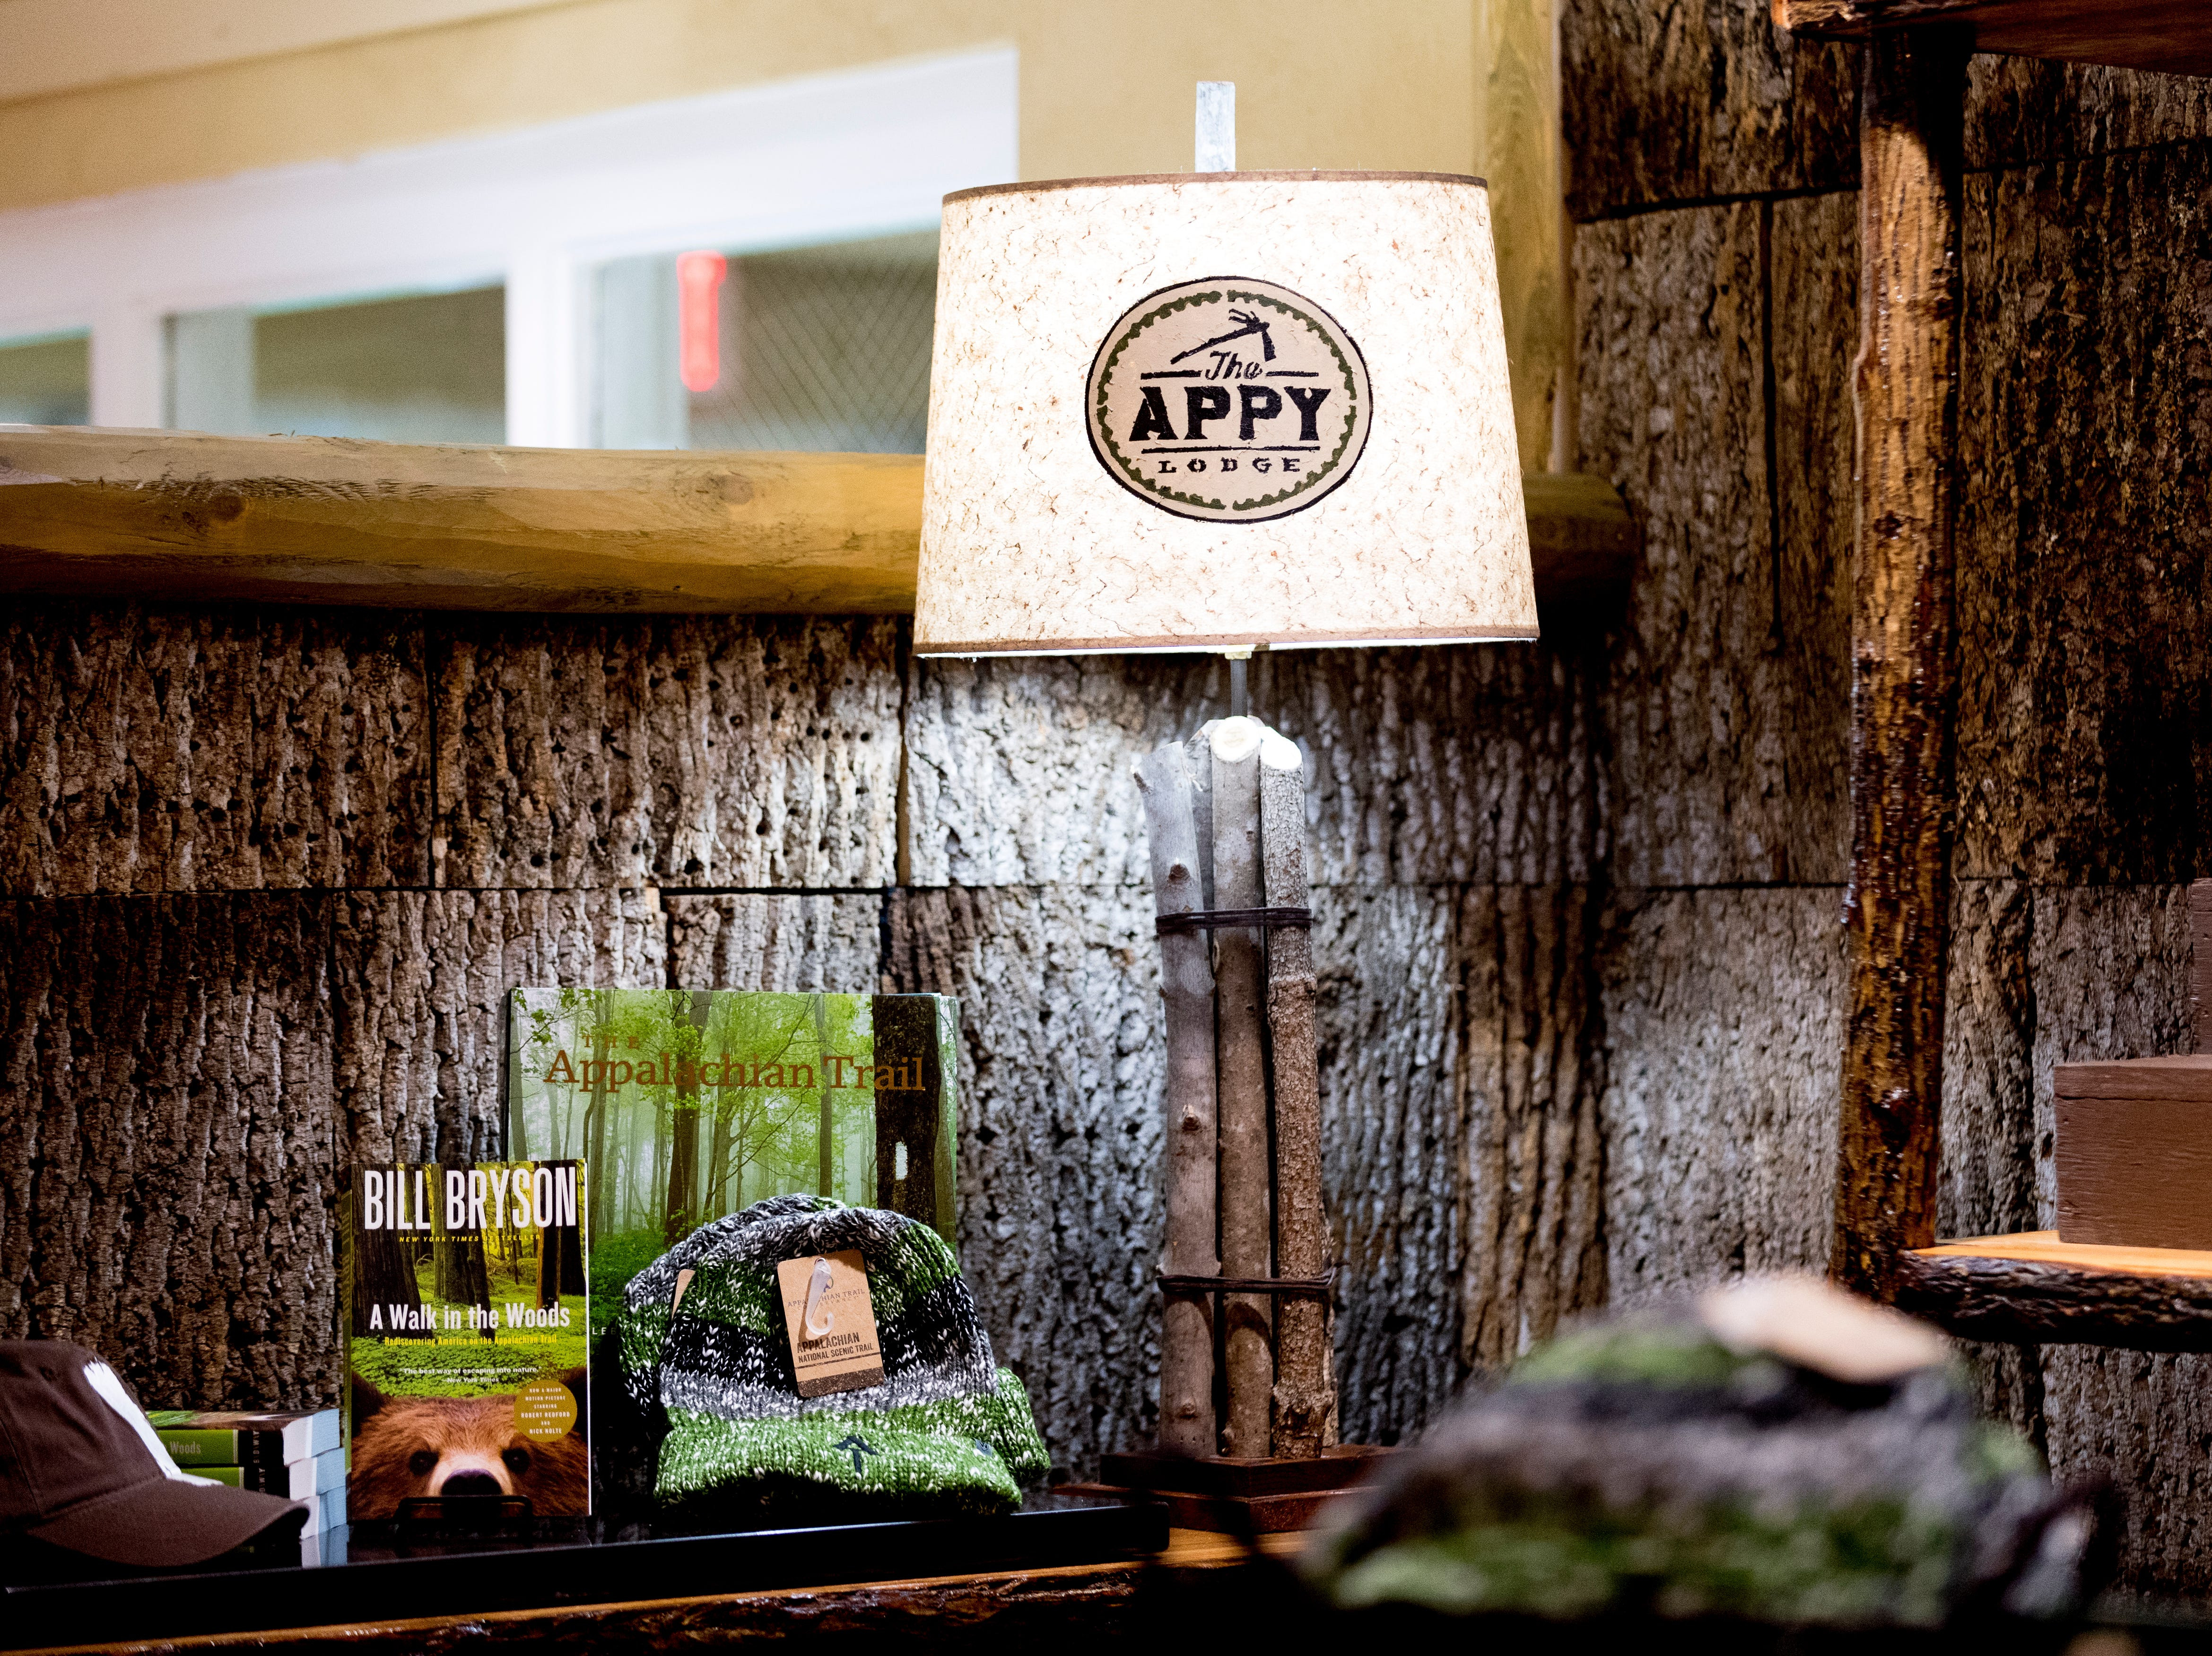 A lamp with the The Appy Lodge logo in the lobby at The Appy Lodge in Gatlinburg, Tennessee on Tuesday, September 18, 2018. The hotel partnered with Appalachian organizations to create a Appalachian Trail theme.